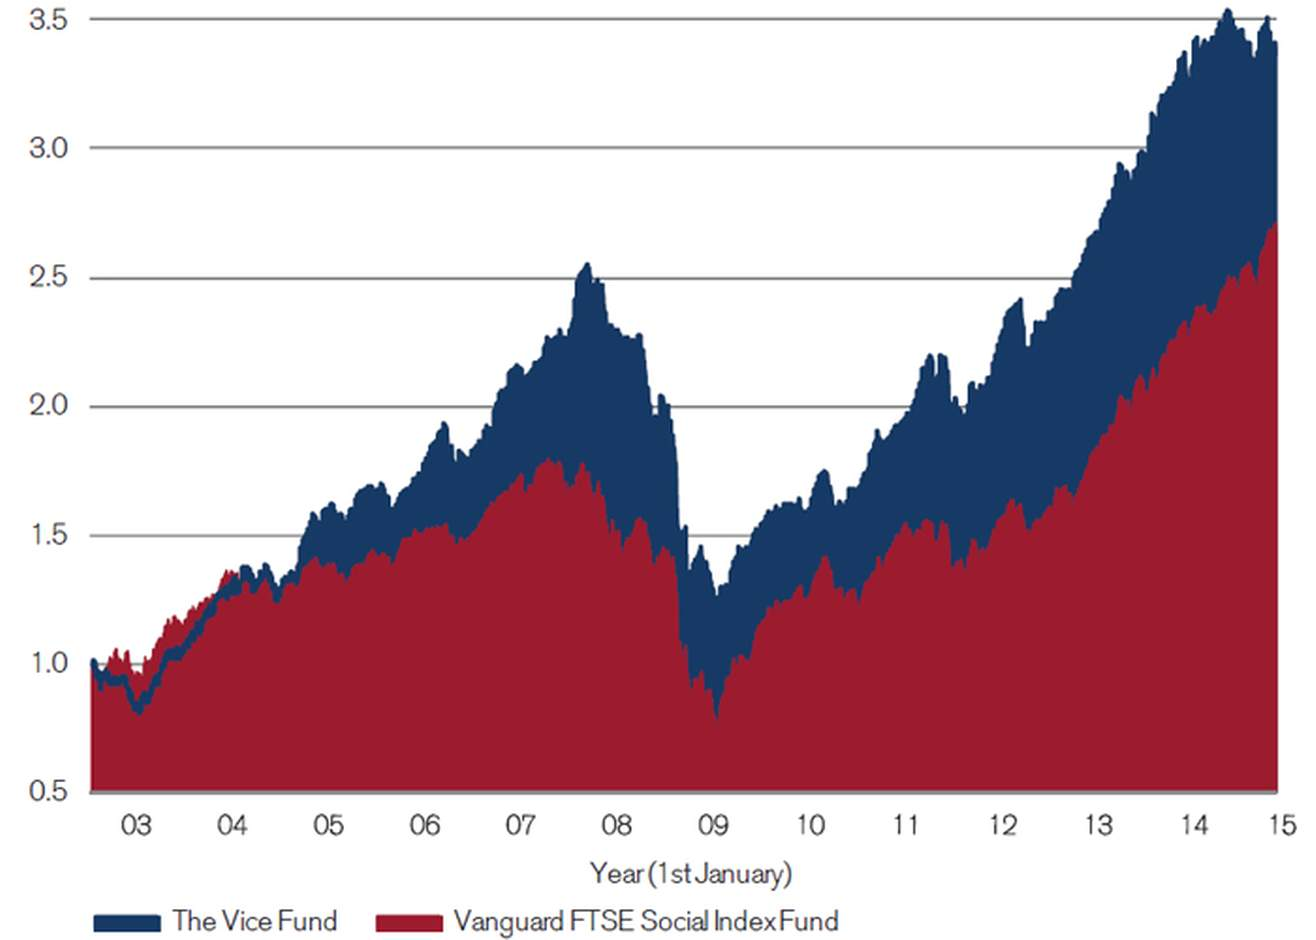 The Vice Fund and Vanguard FTSE Social Index Fund 2002–14